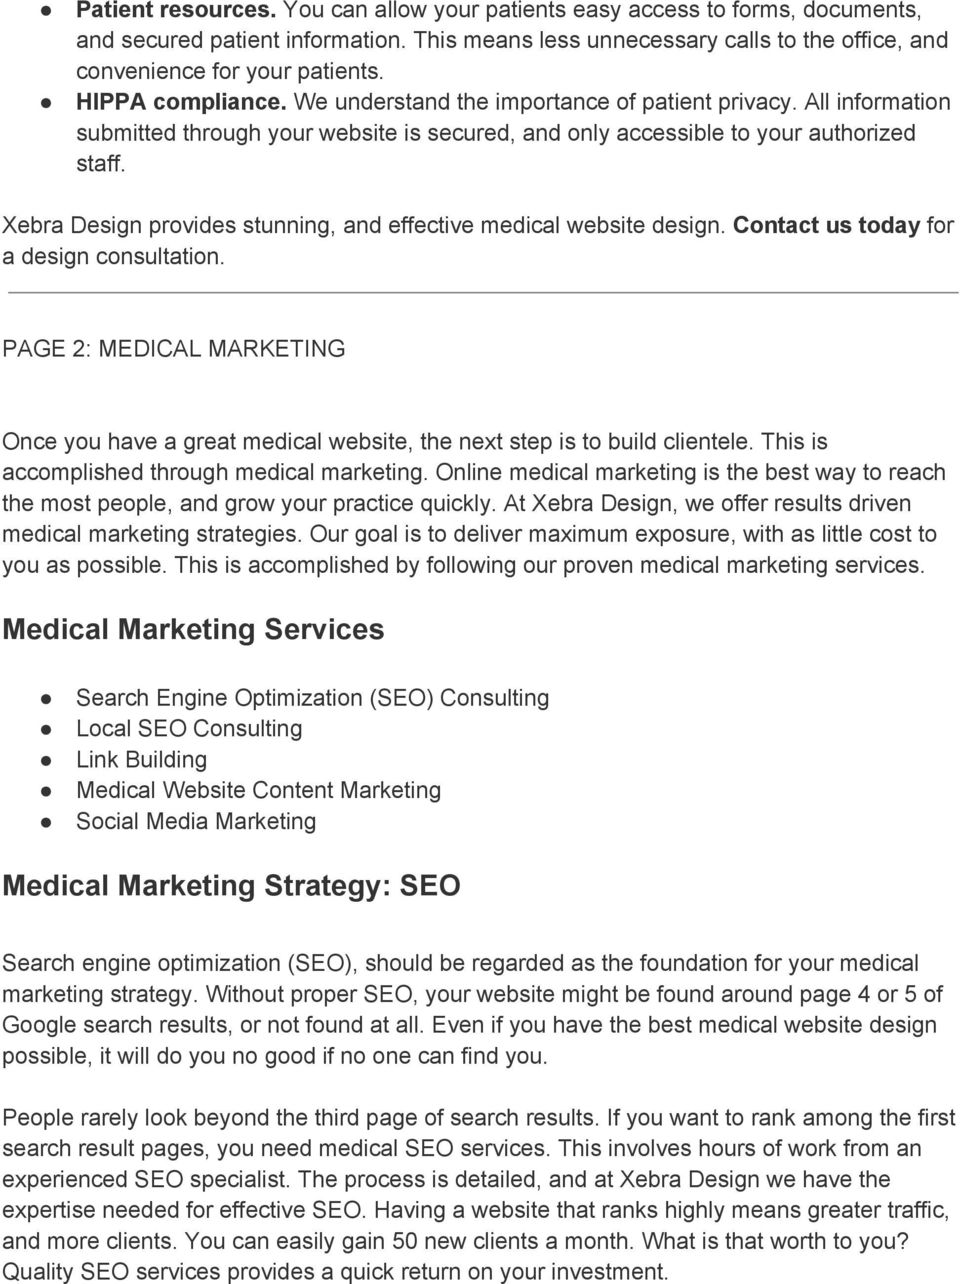 Xebra Design provides stunning, and effective medical website design. Contact us today for a design consultation.